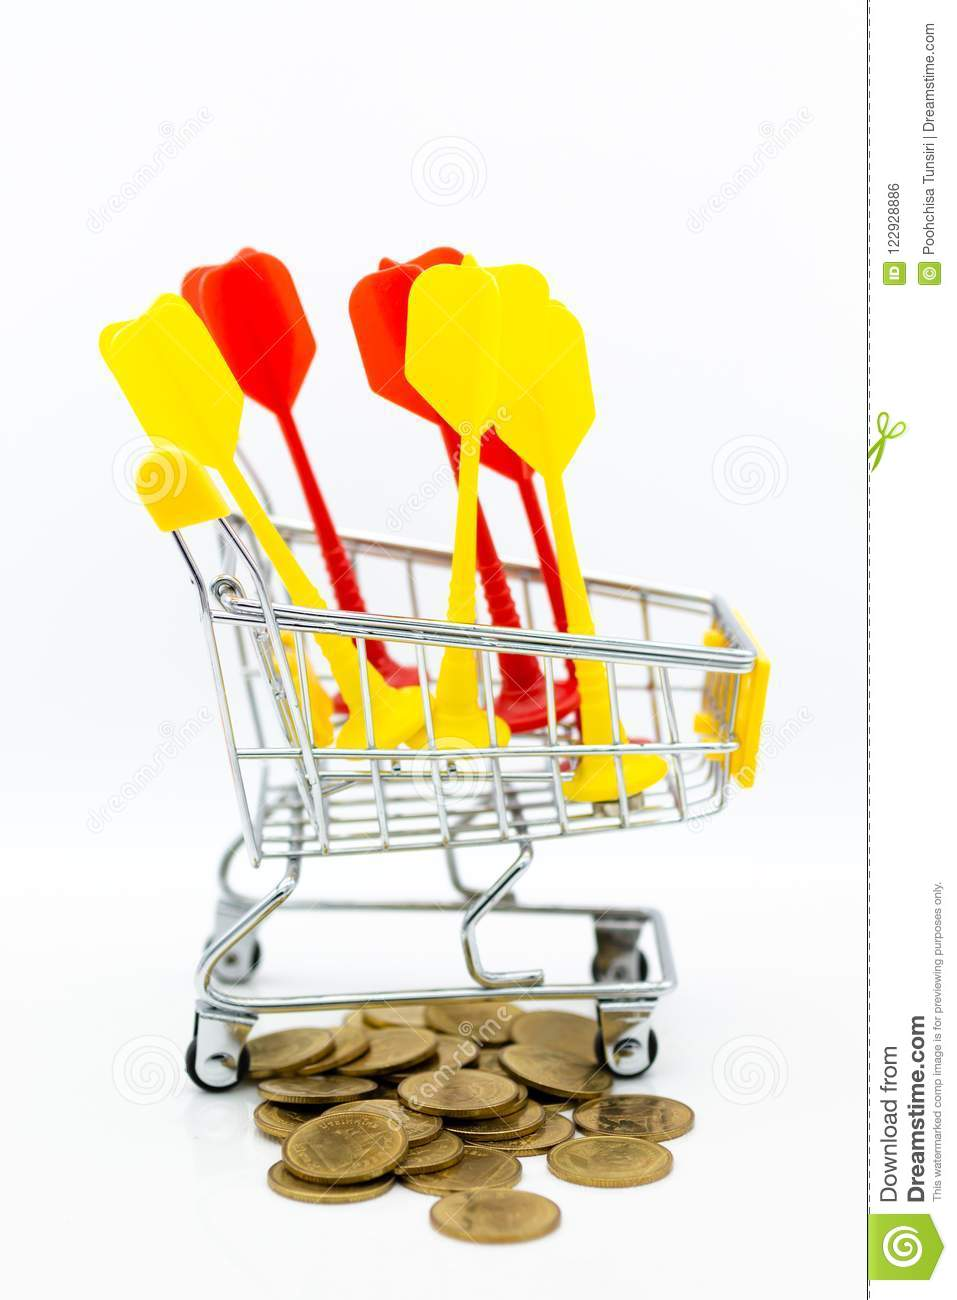 Shopping Cart For Retail Business  Image Use For Online And